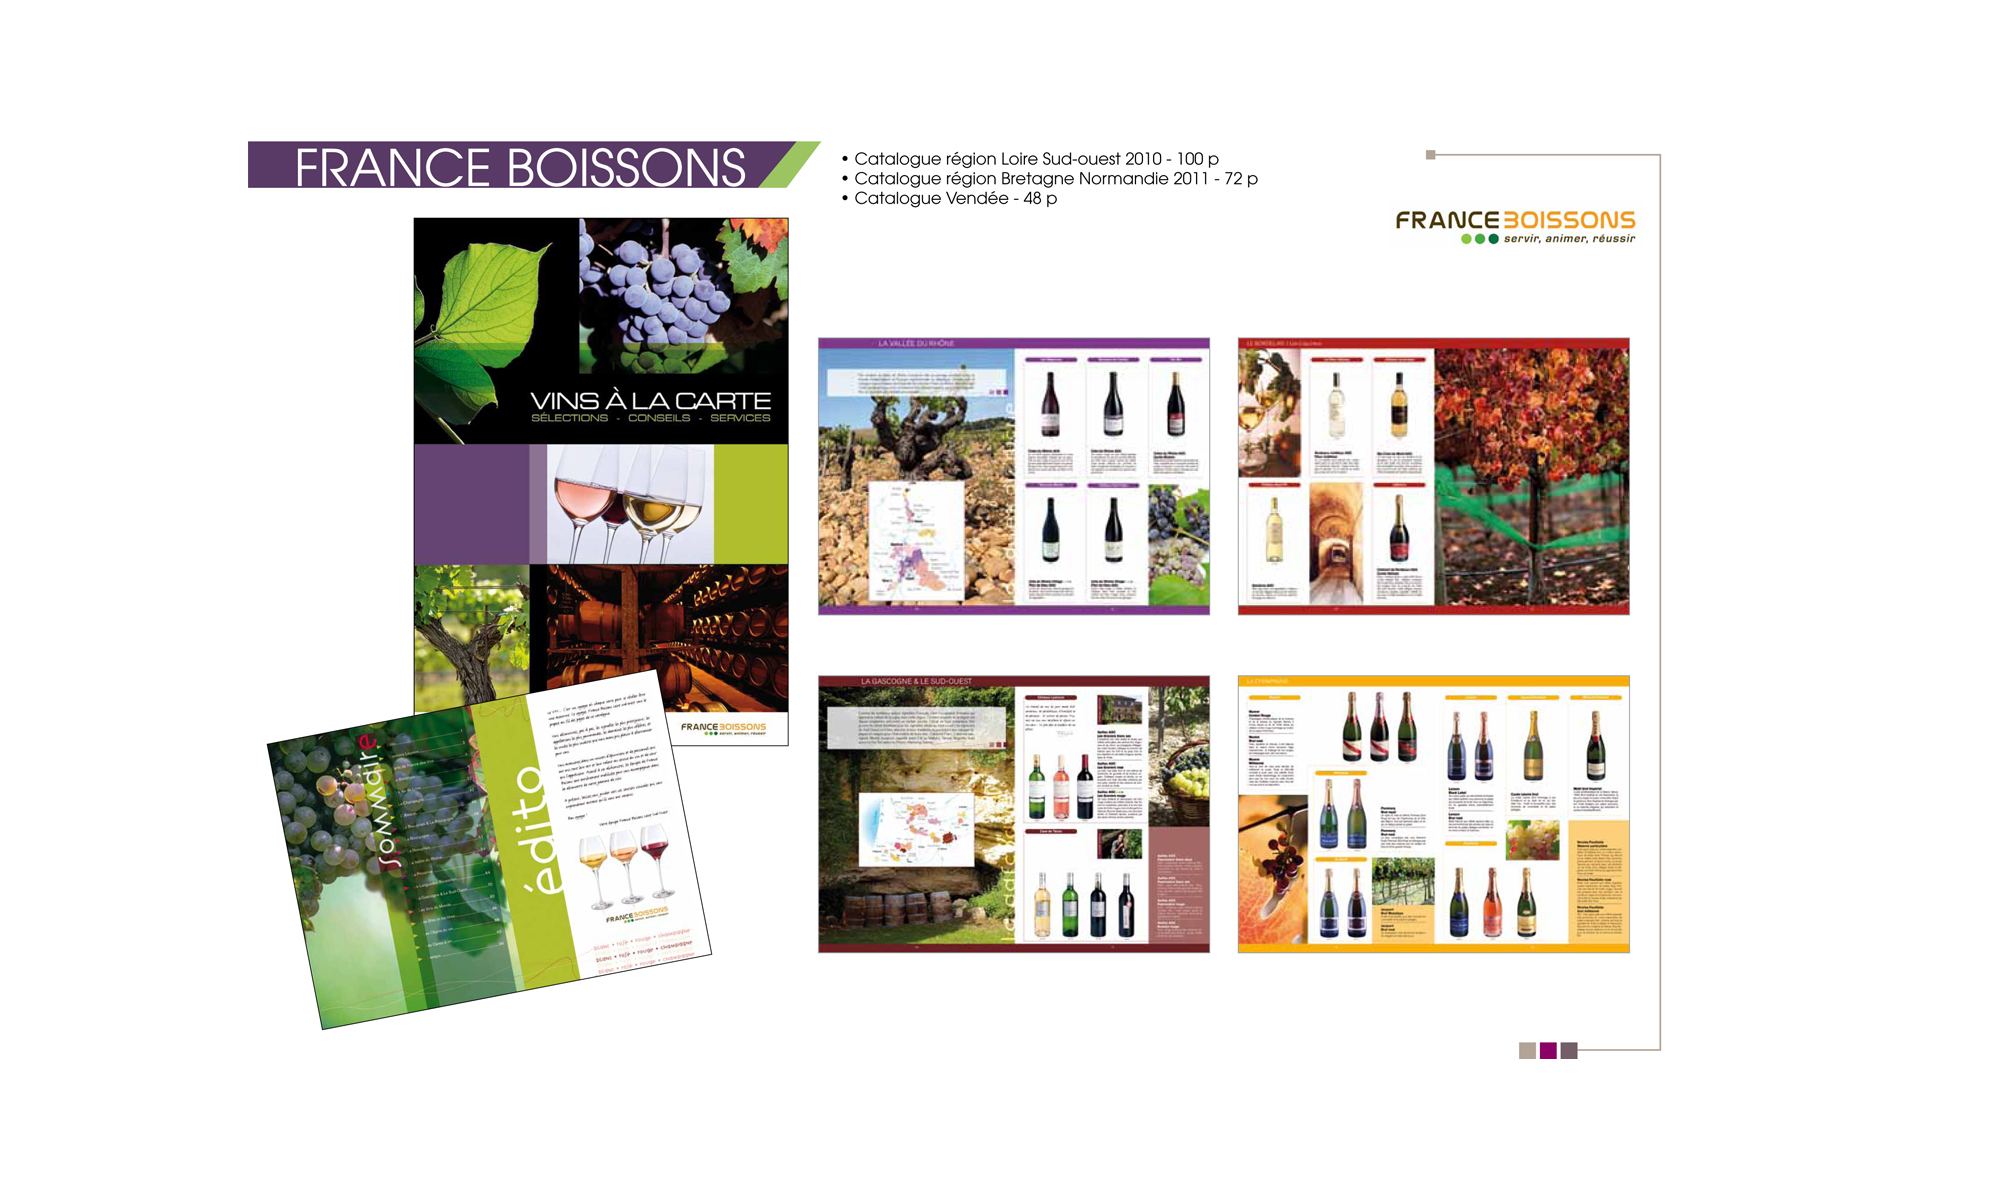 France boisson catalogue